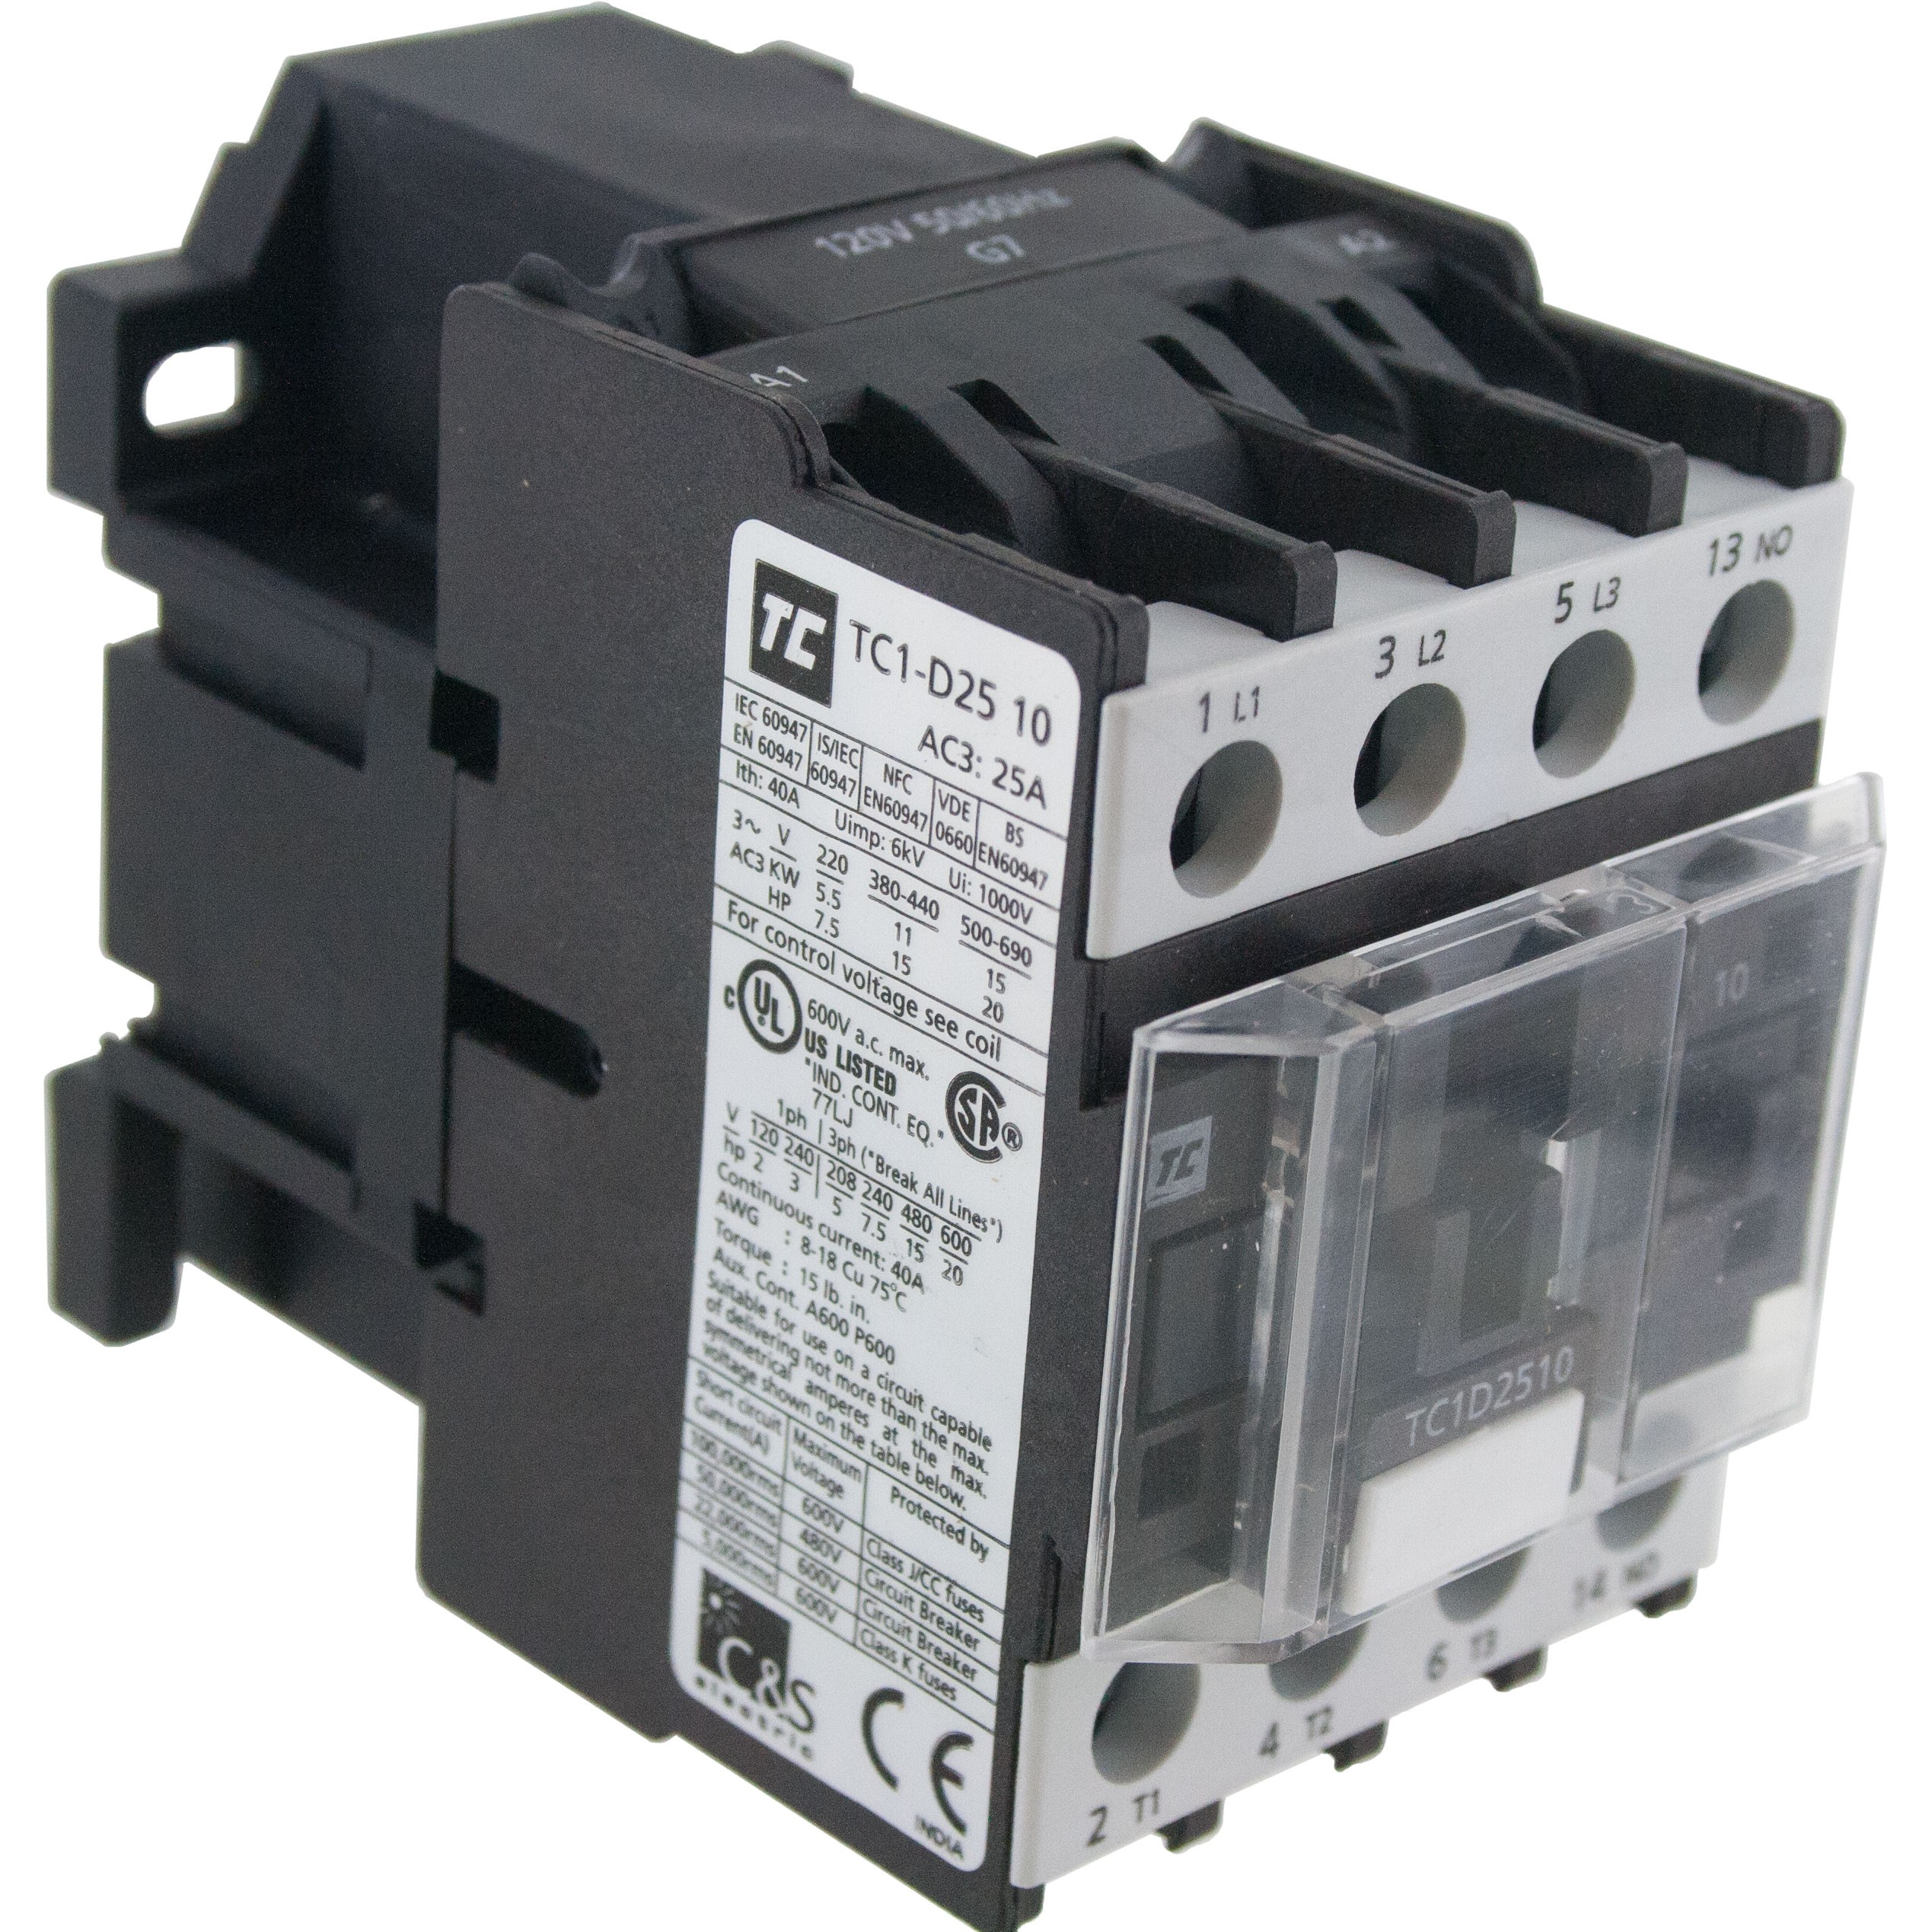 3 Pole Contactor 25 Amp 1 N/O 440 Volt AC Coil Angle